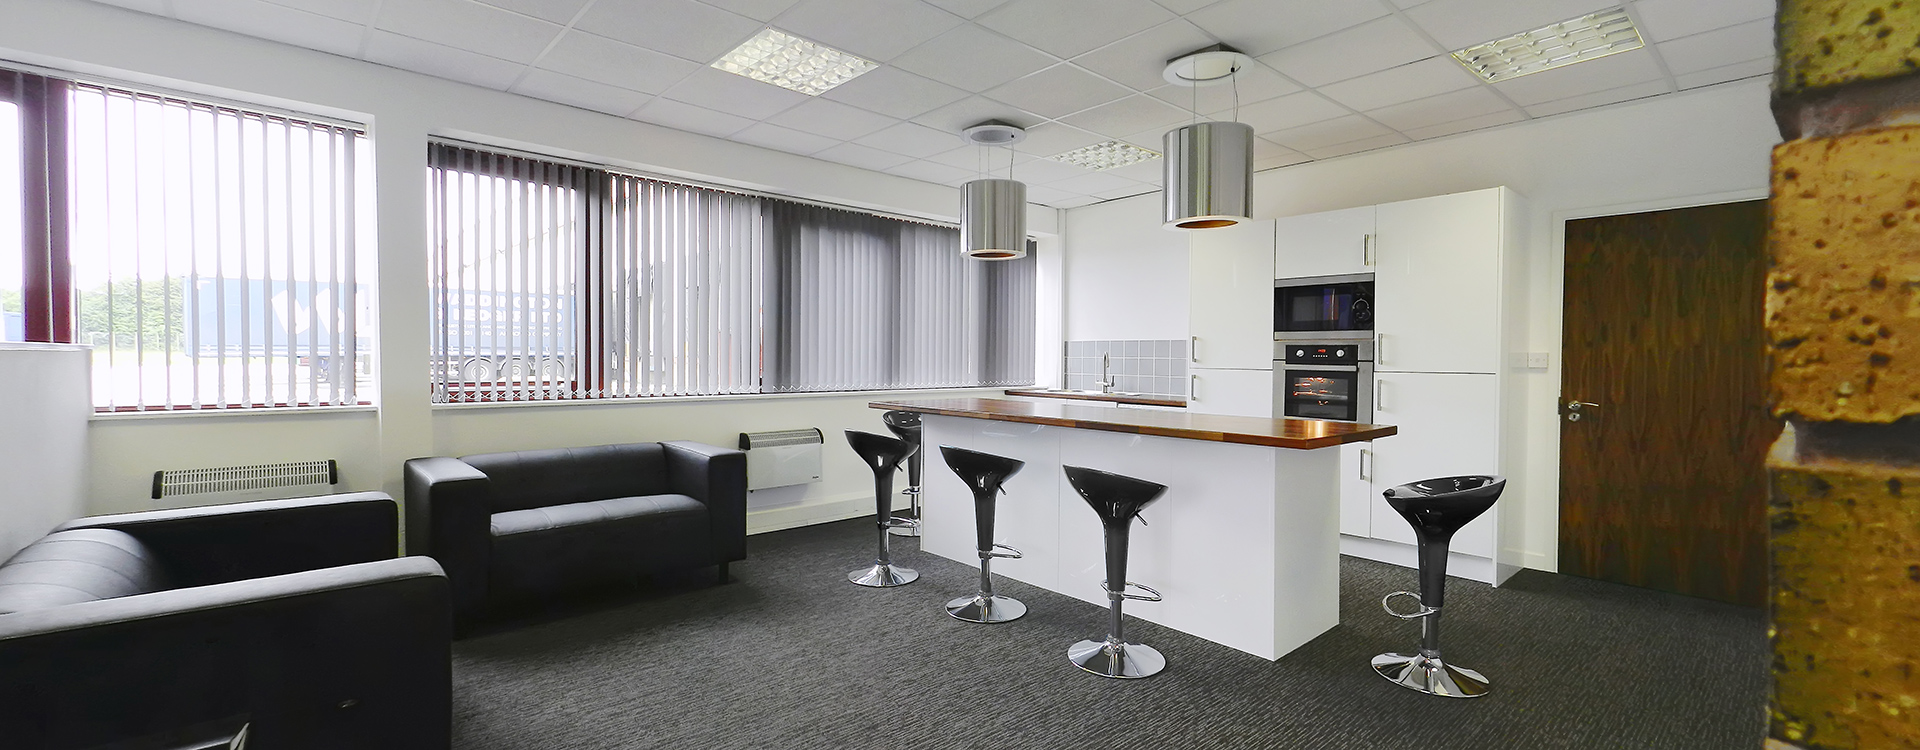 Case study of a modern office interior design for Office interior design uk